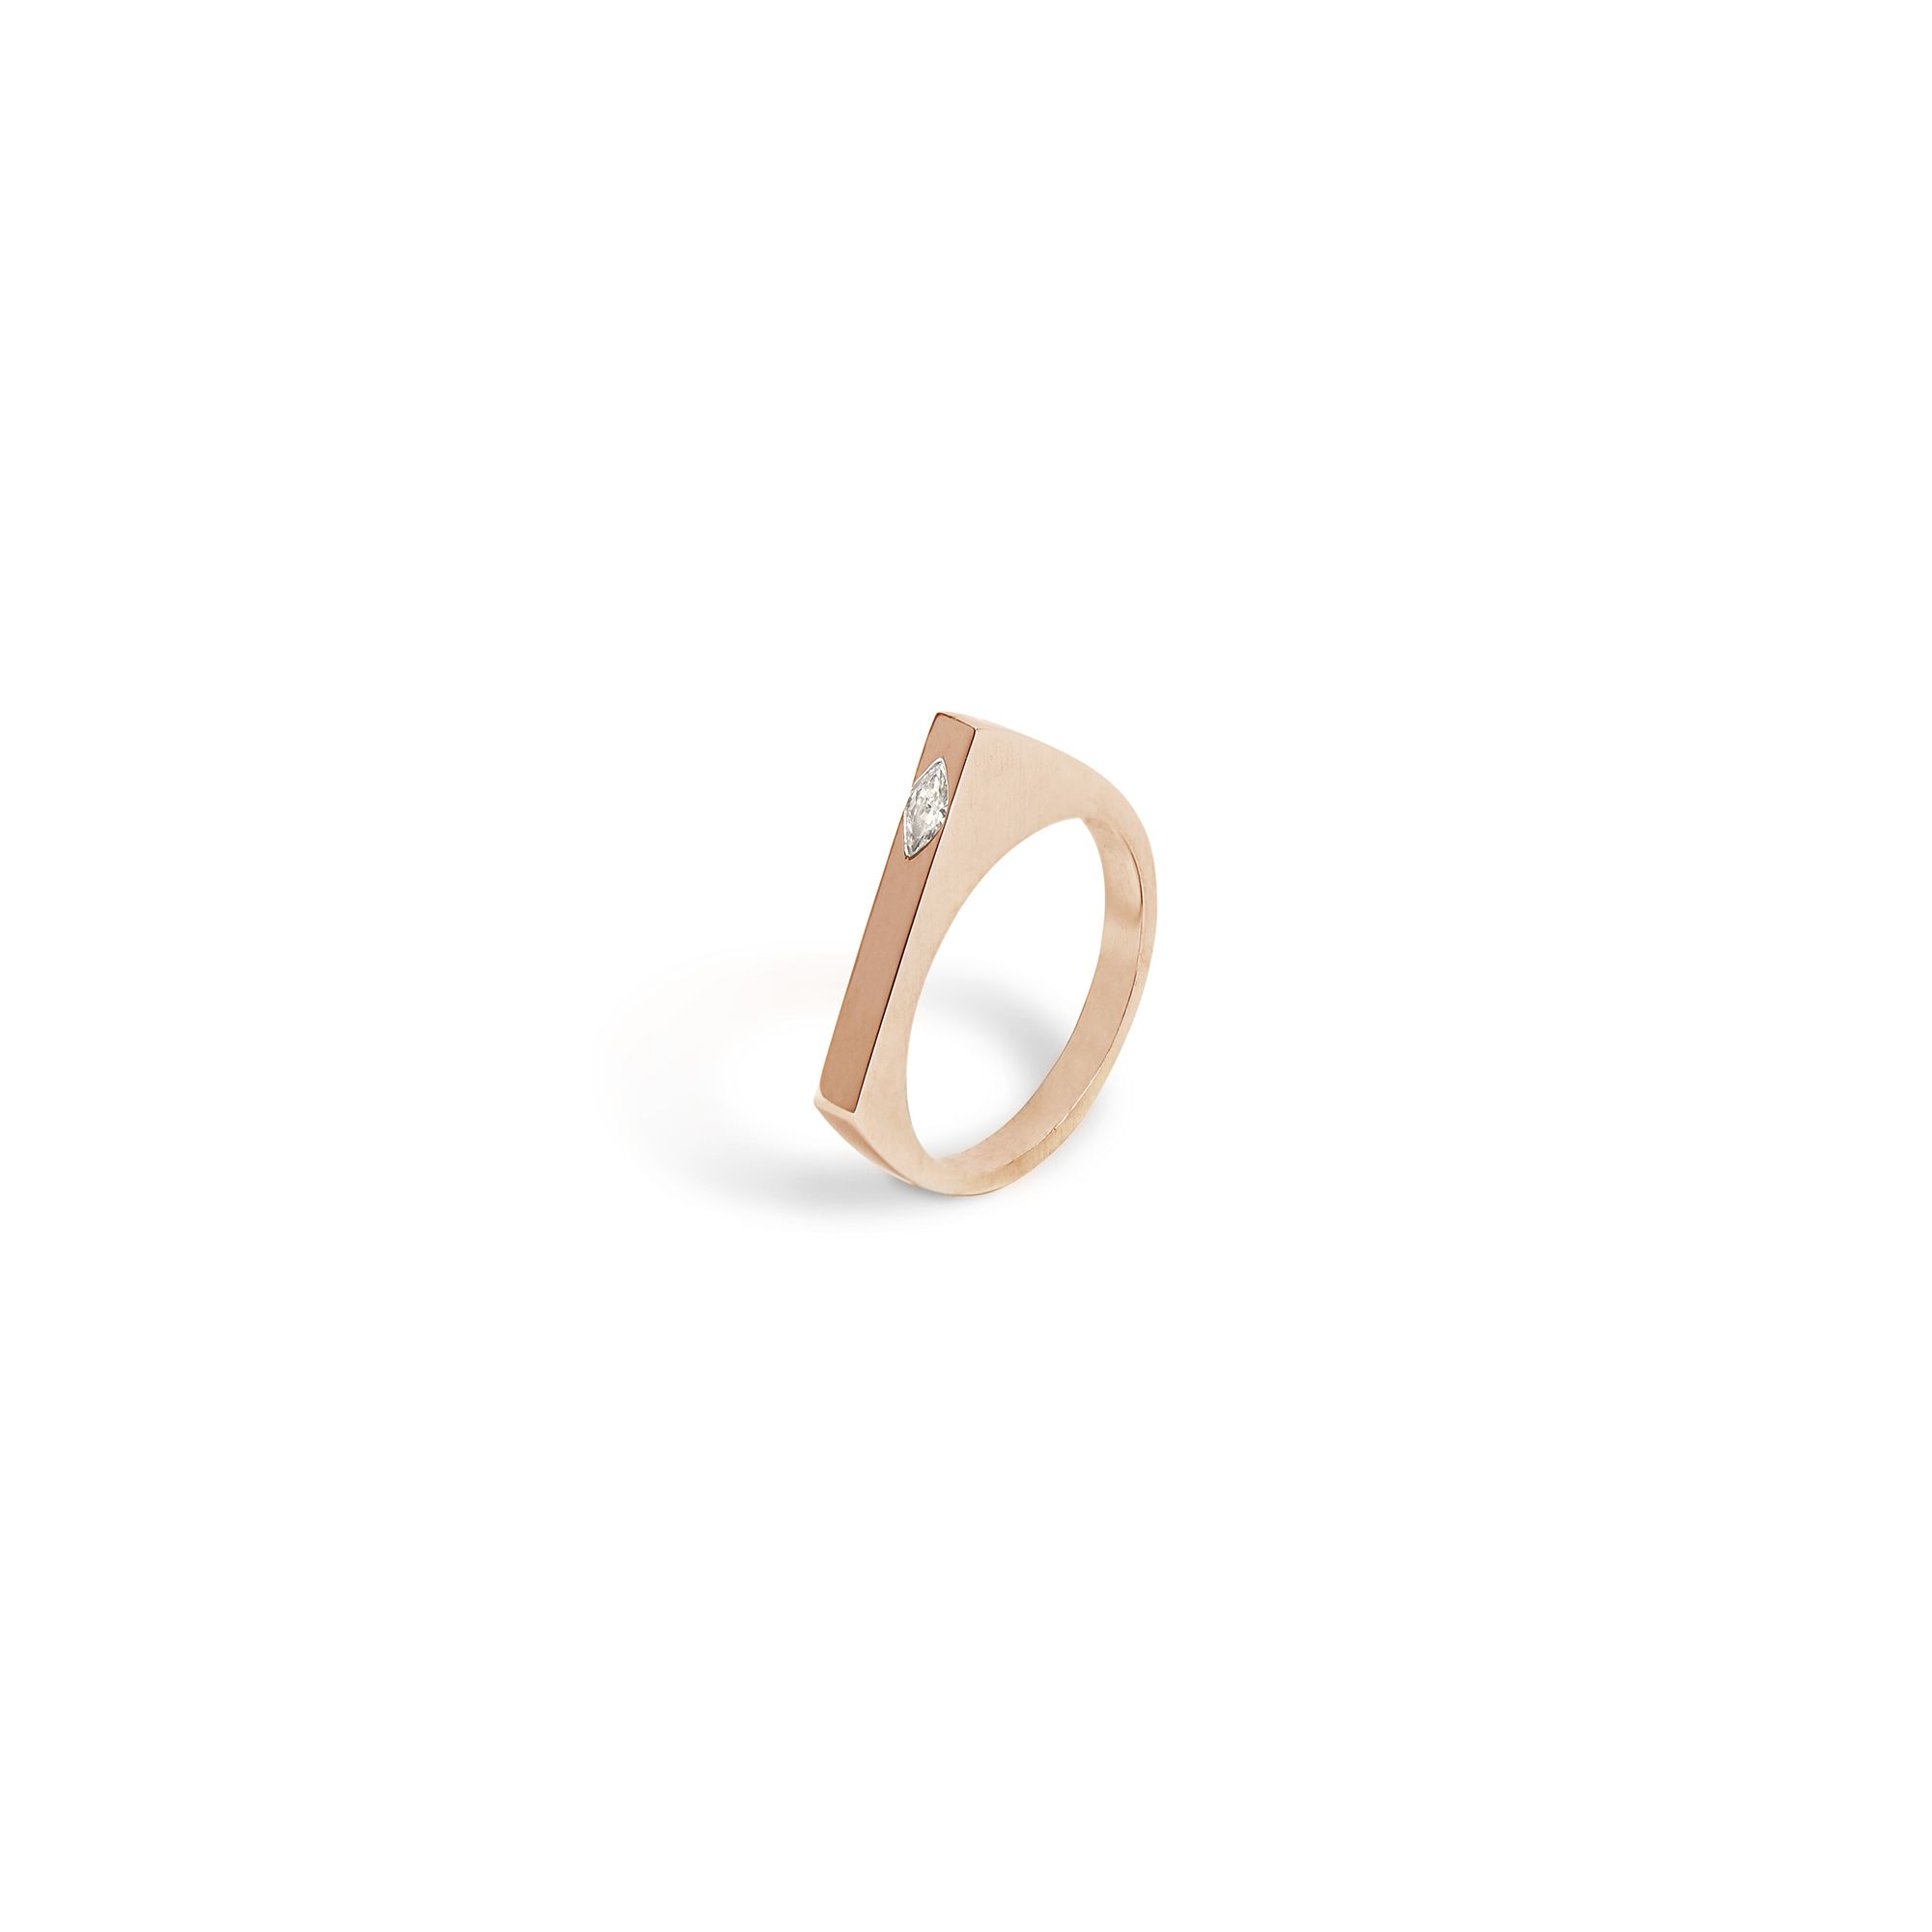 Rose gold 'Congiunzioni' ring with Marquise Rose gold ring with diamonds